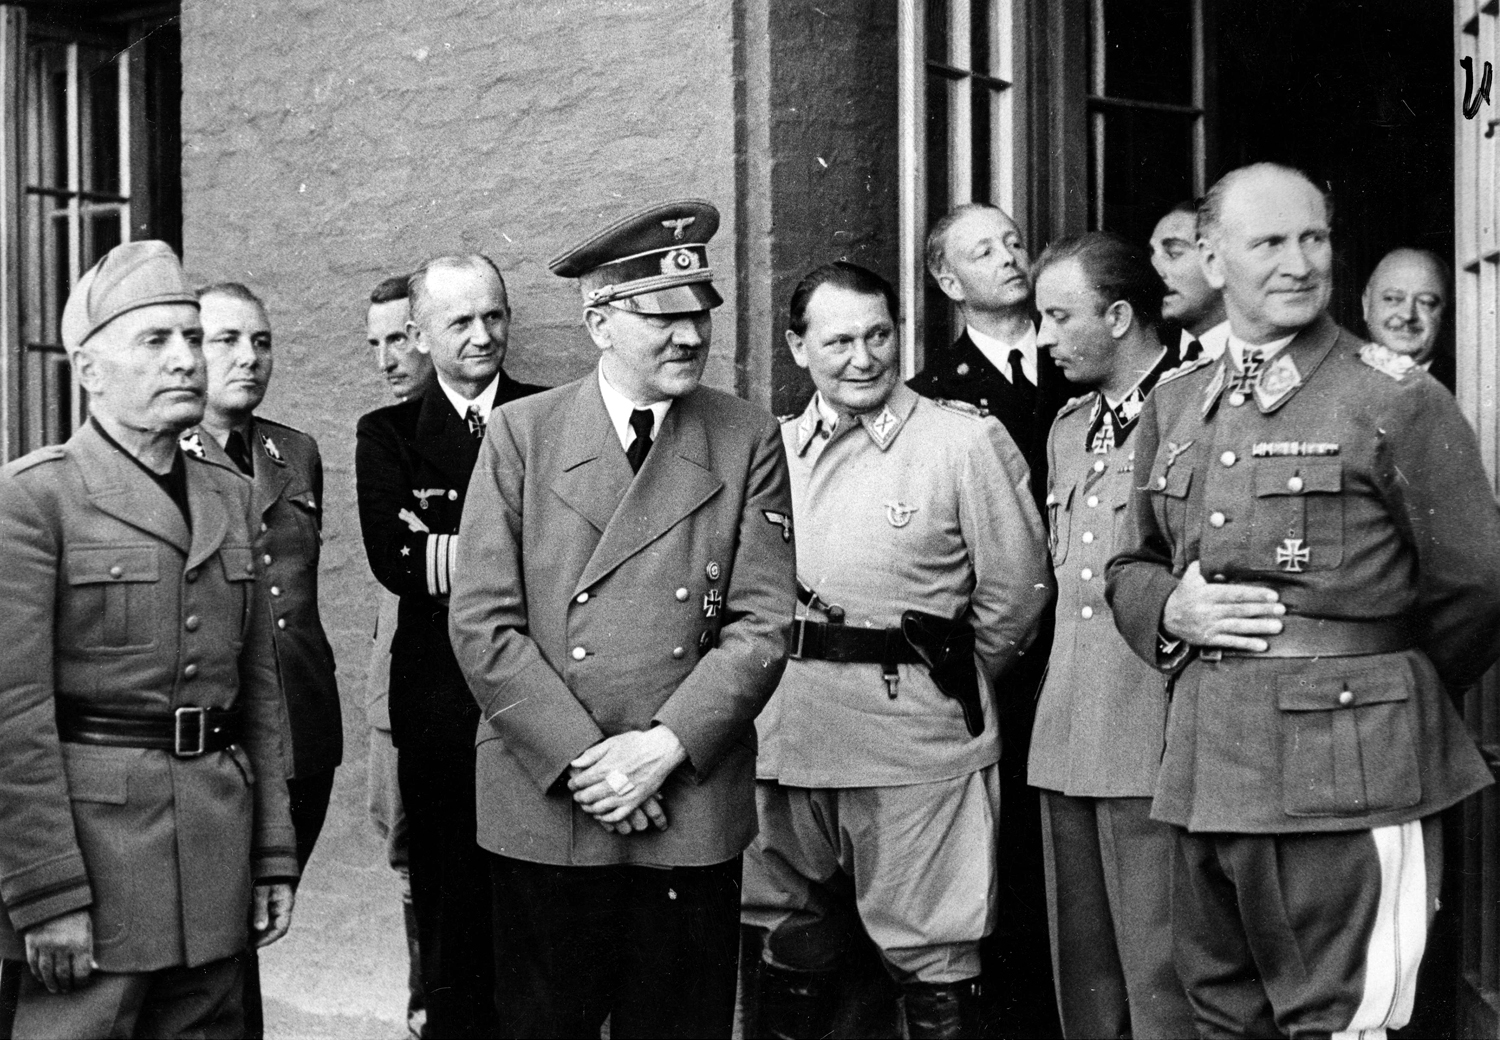 Benito Mussolini with Adolf Hitler and his staff at the Wolfsschanze just after the bomb attack